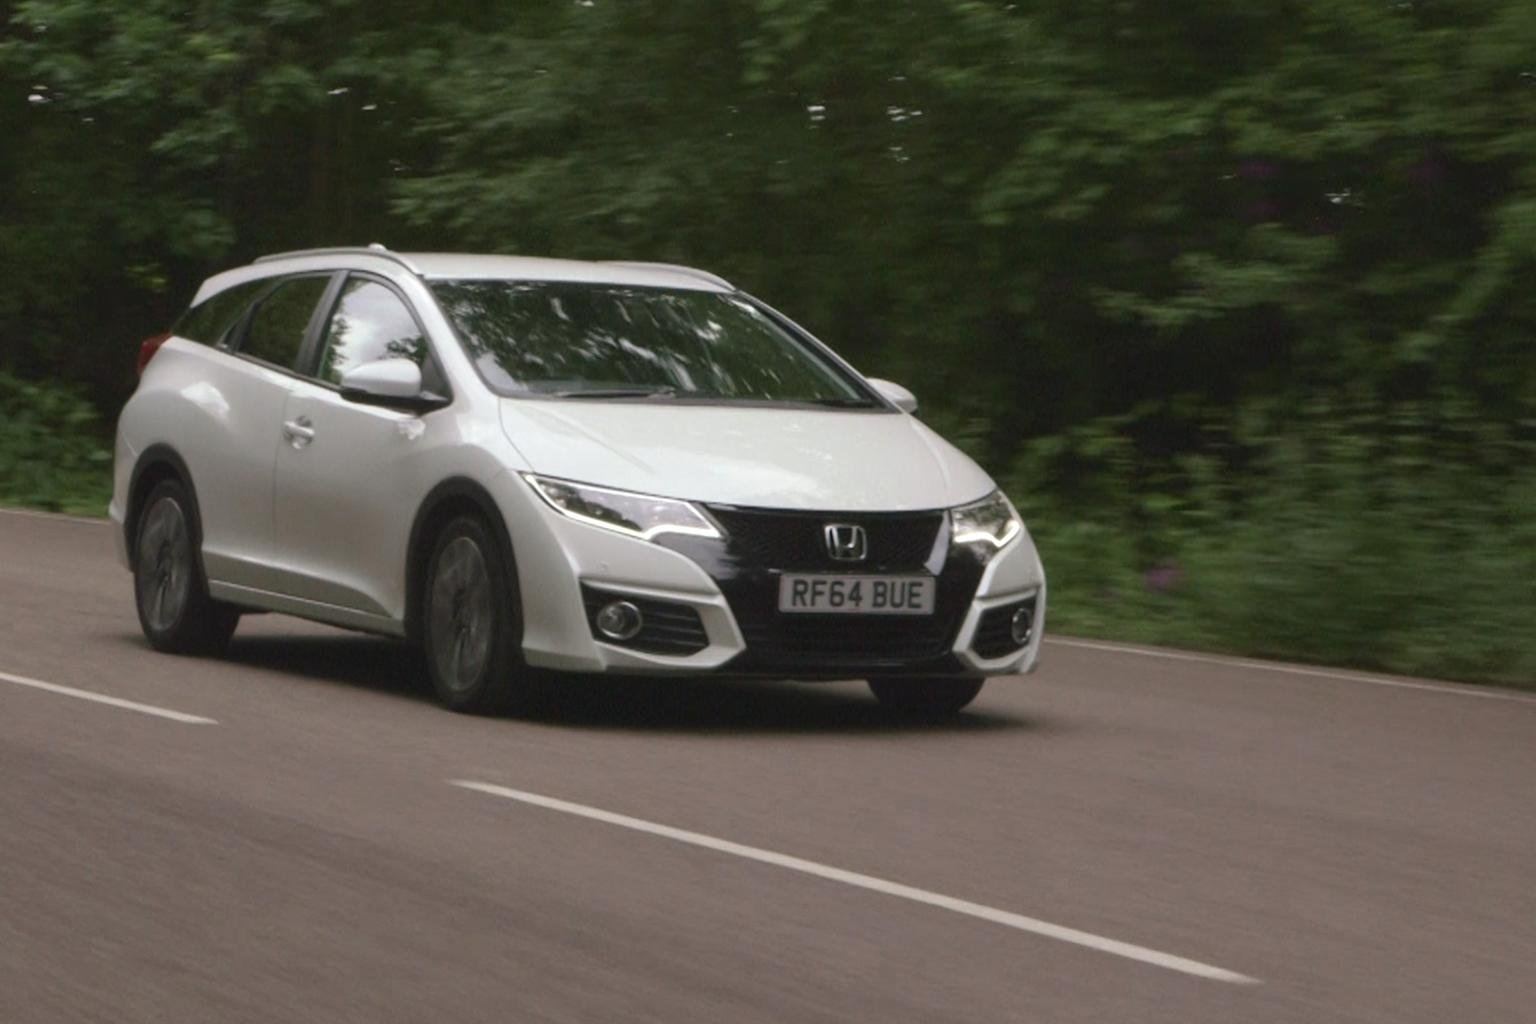 Promoted: Honda Civic Tourer - standard extras to make life easier